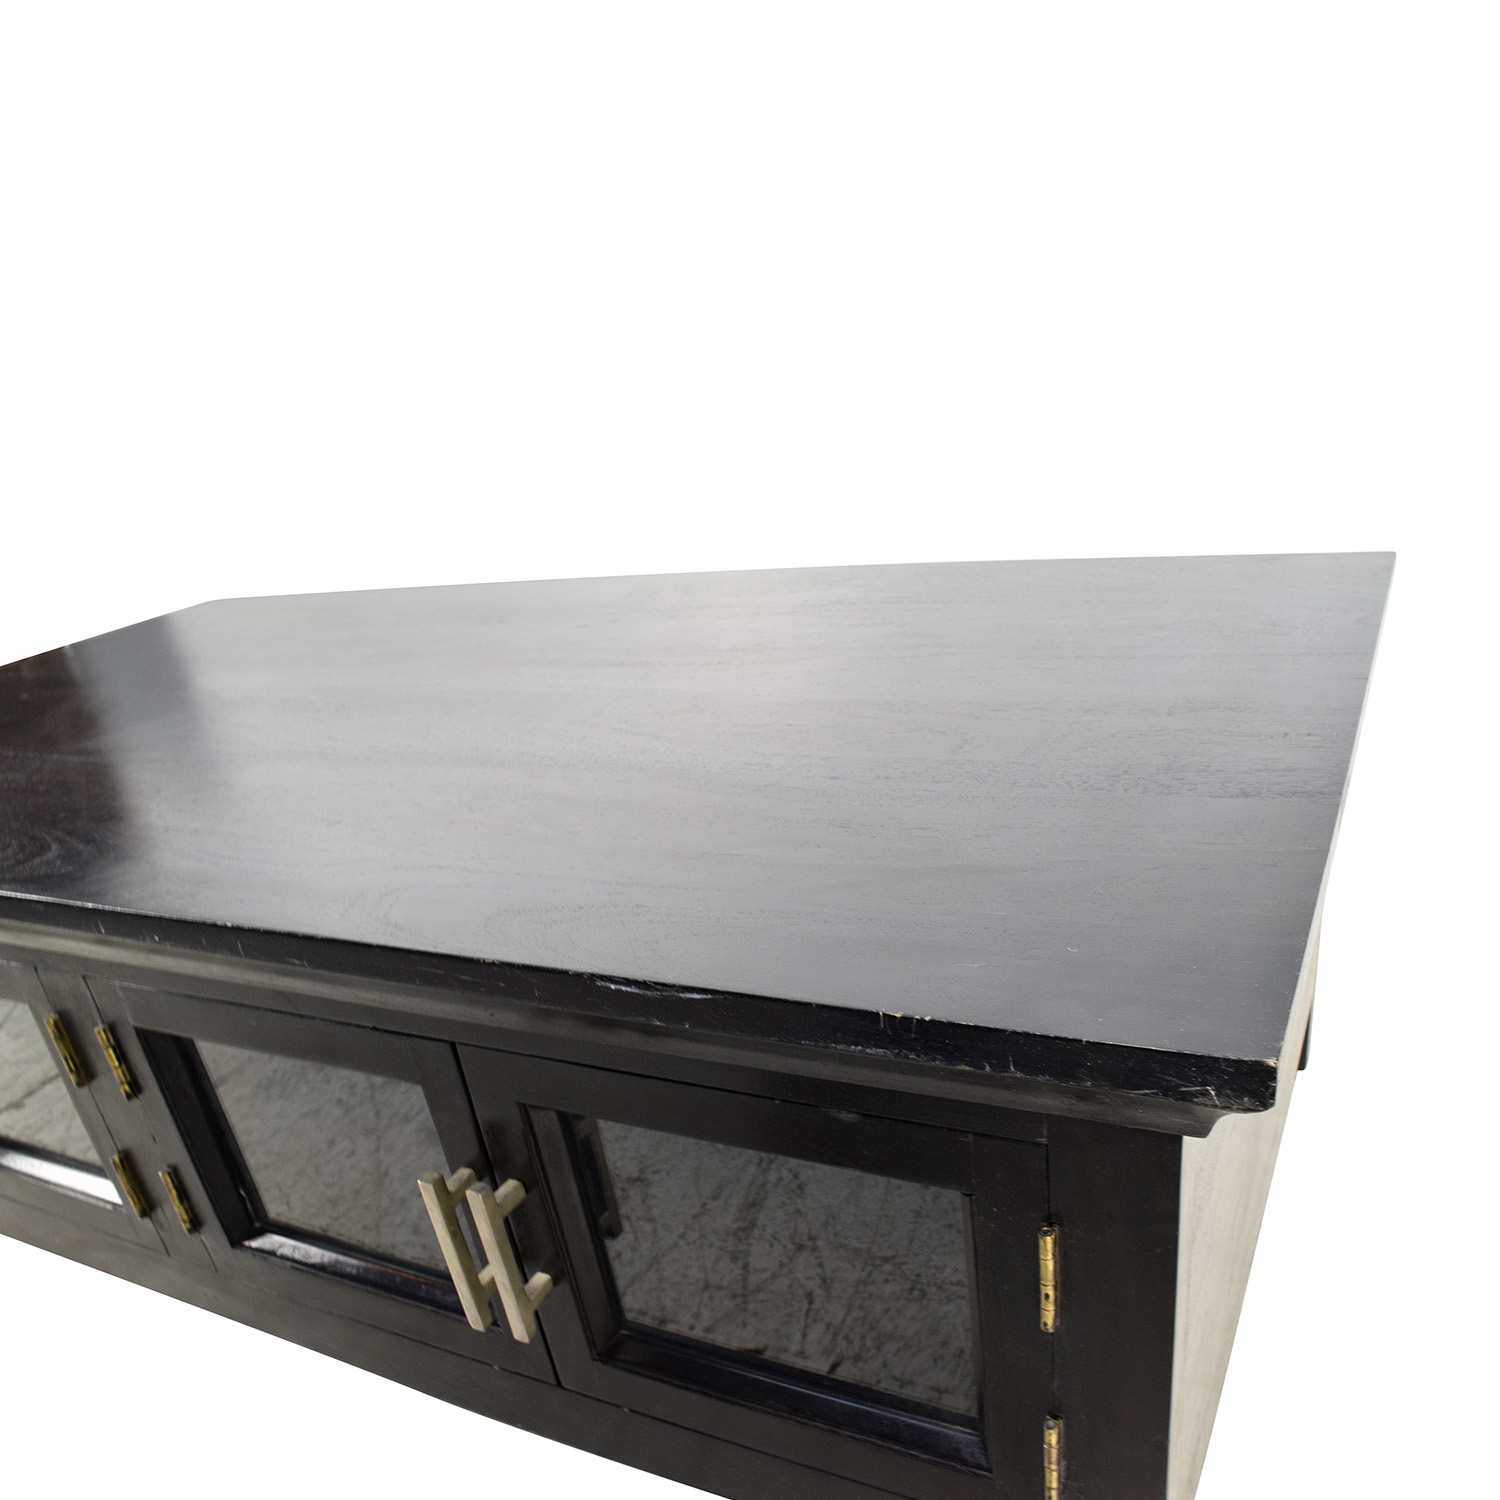 Black Coffee Table Shelf: Black Wooden Storage Coffee Table / Tables